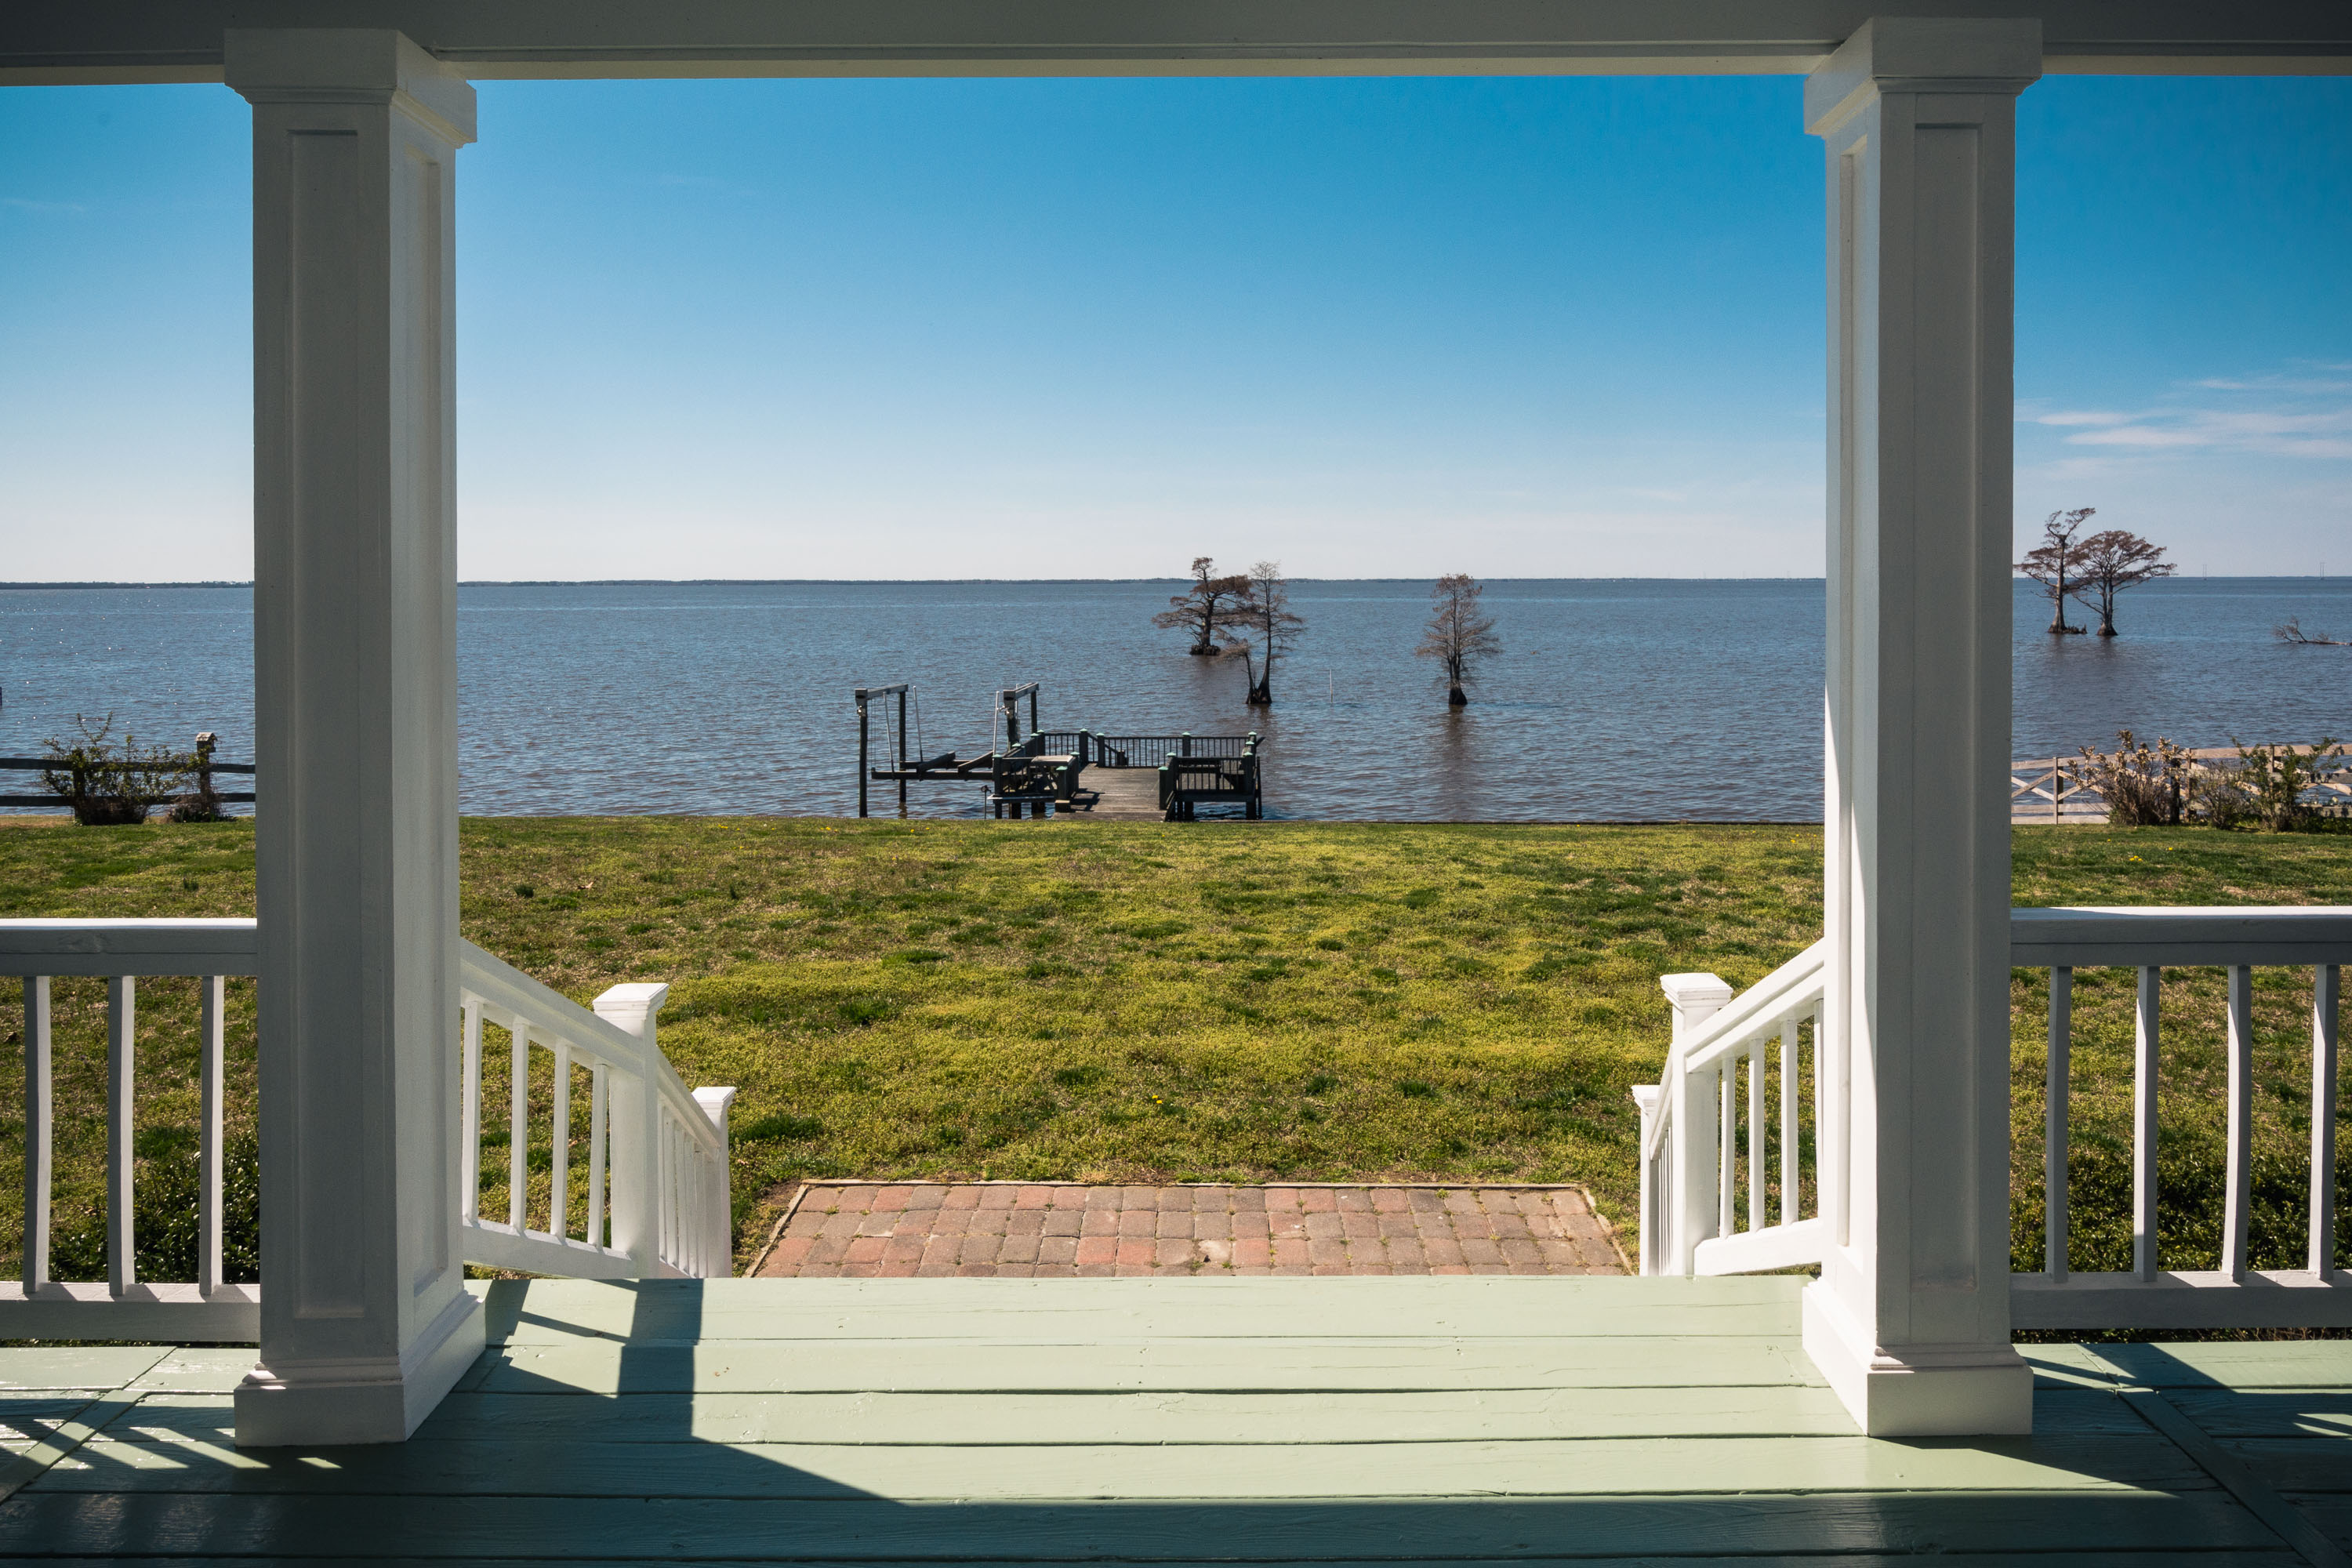 Single Family Home for Sale at Water & Golf Front Home 119 Benbury Dr Edenton, North Carolina, 27932 United States